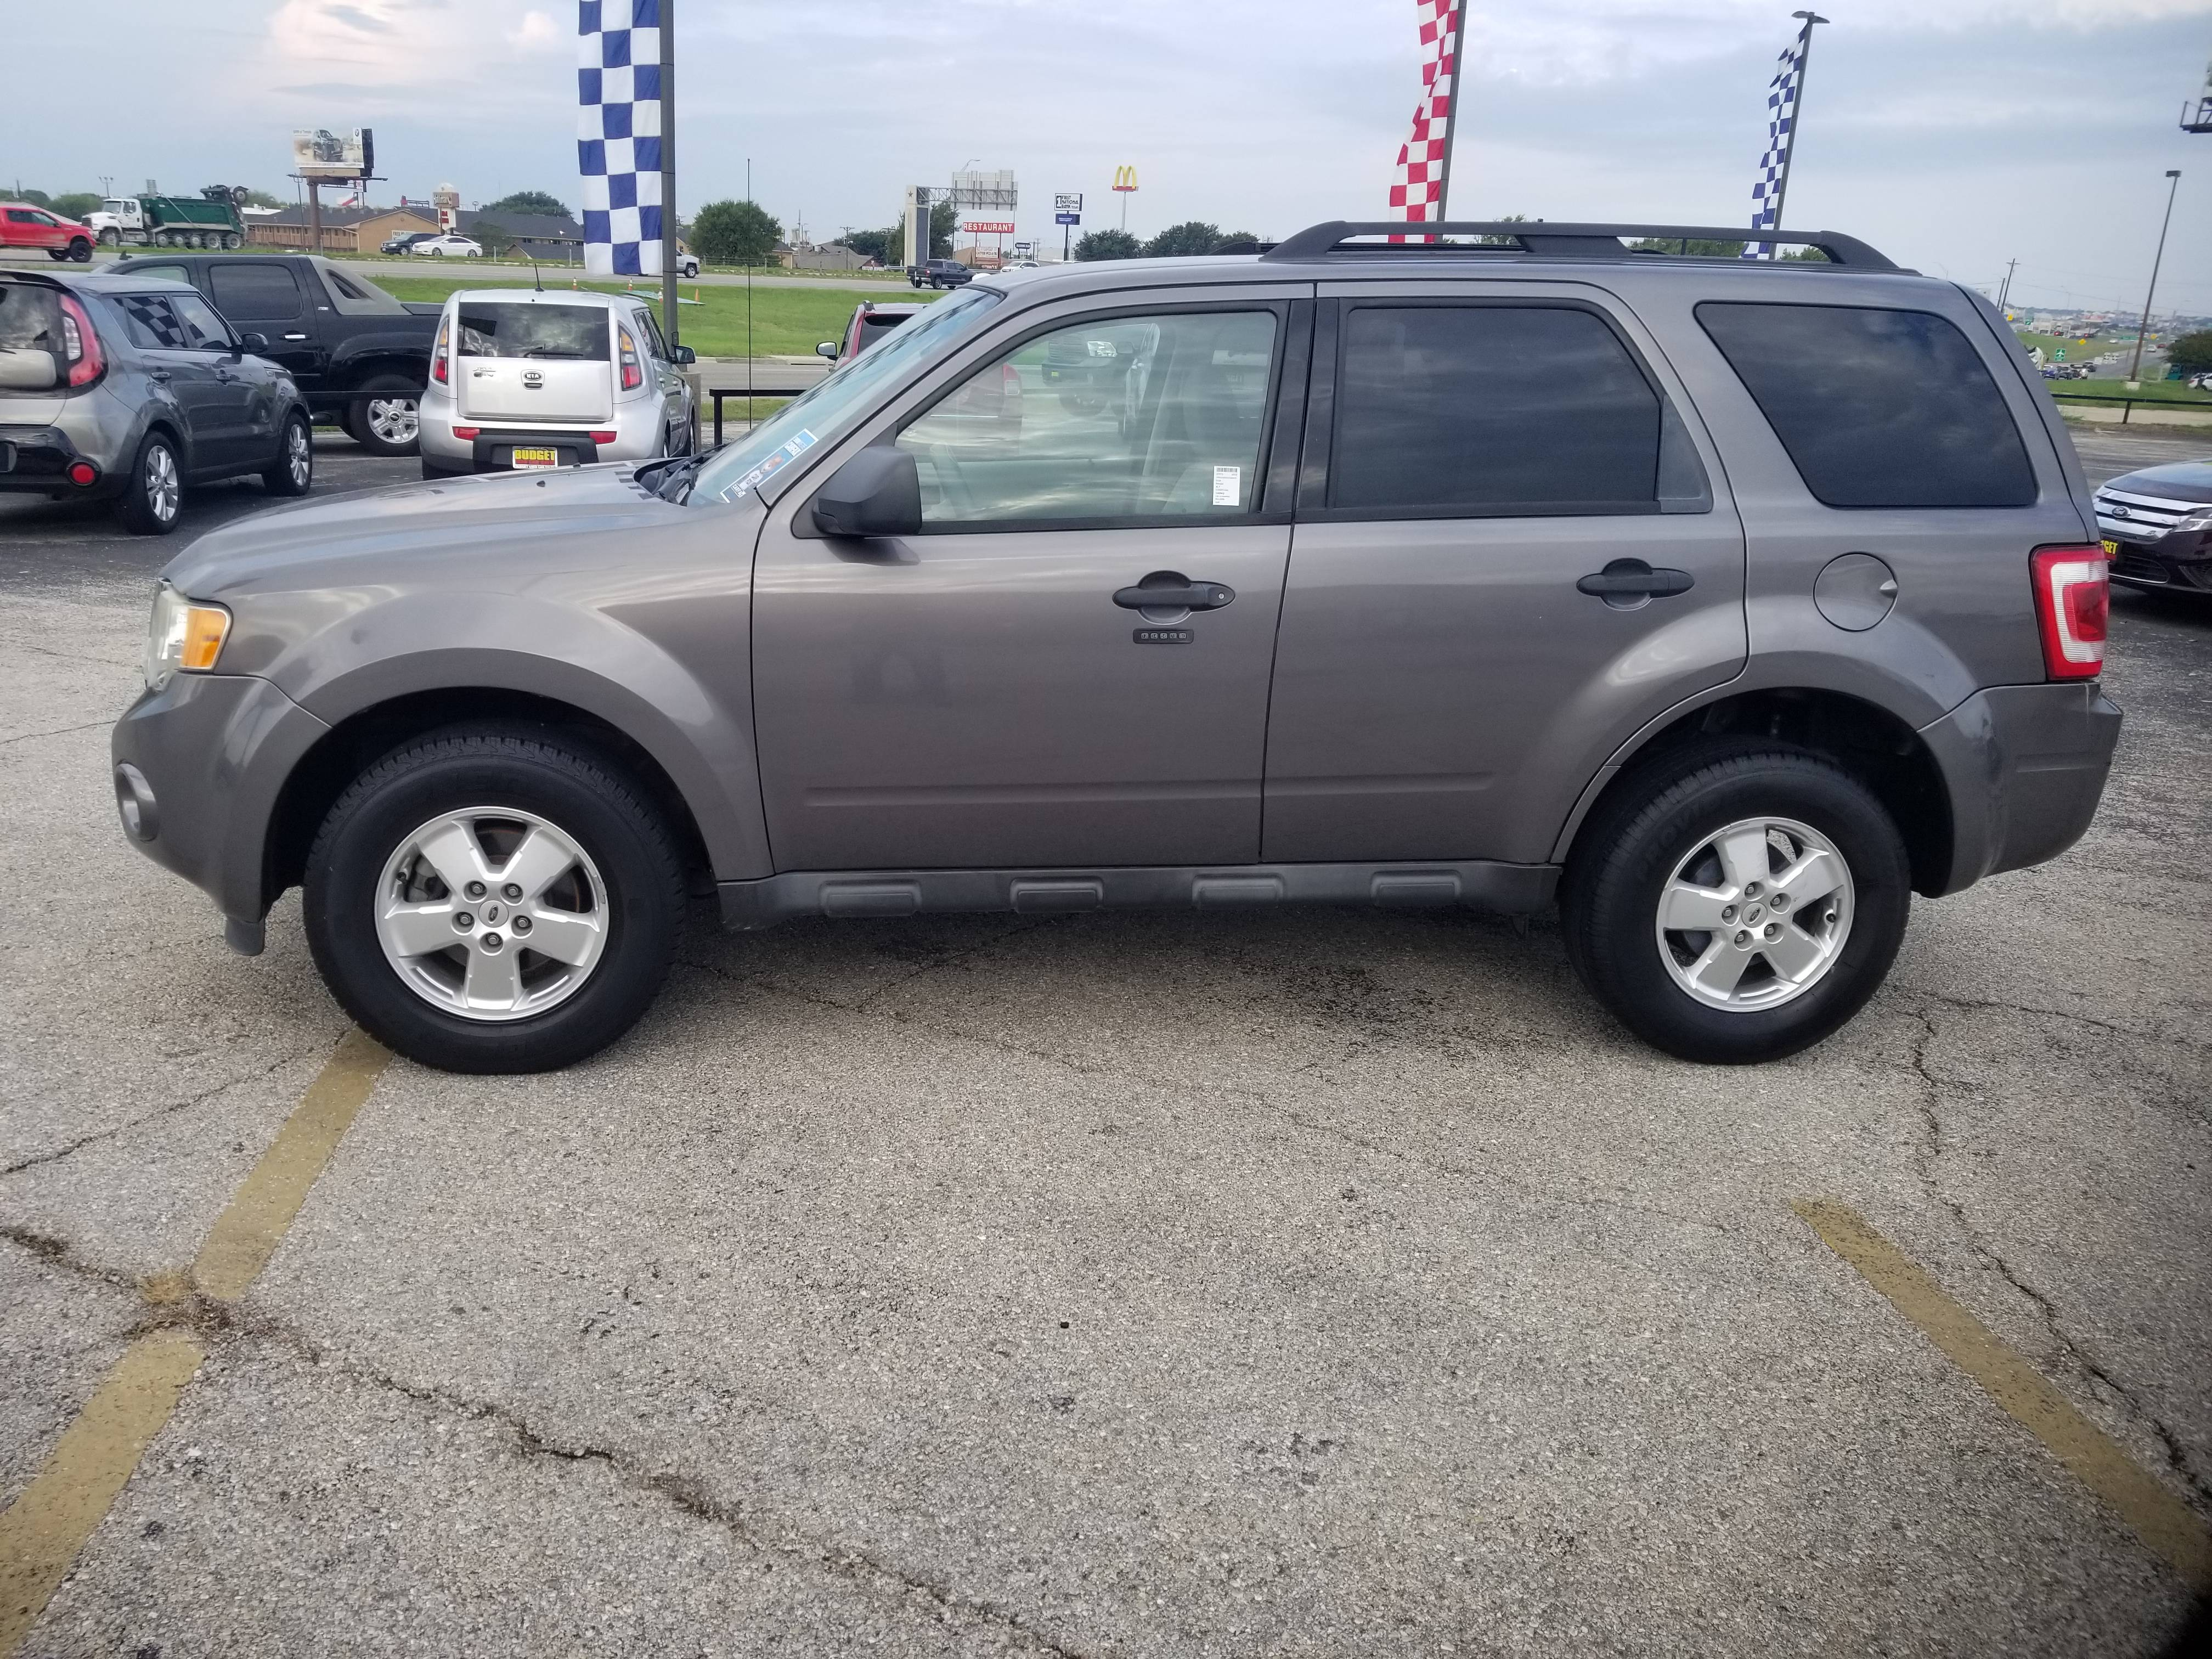 used vehicle - SUV Ford Escape 2012